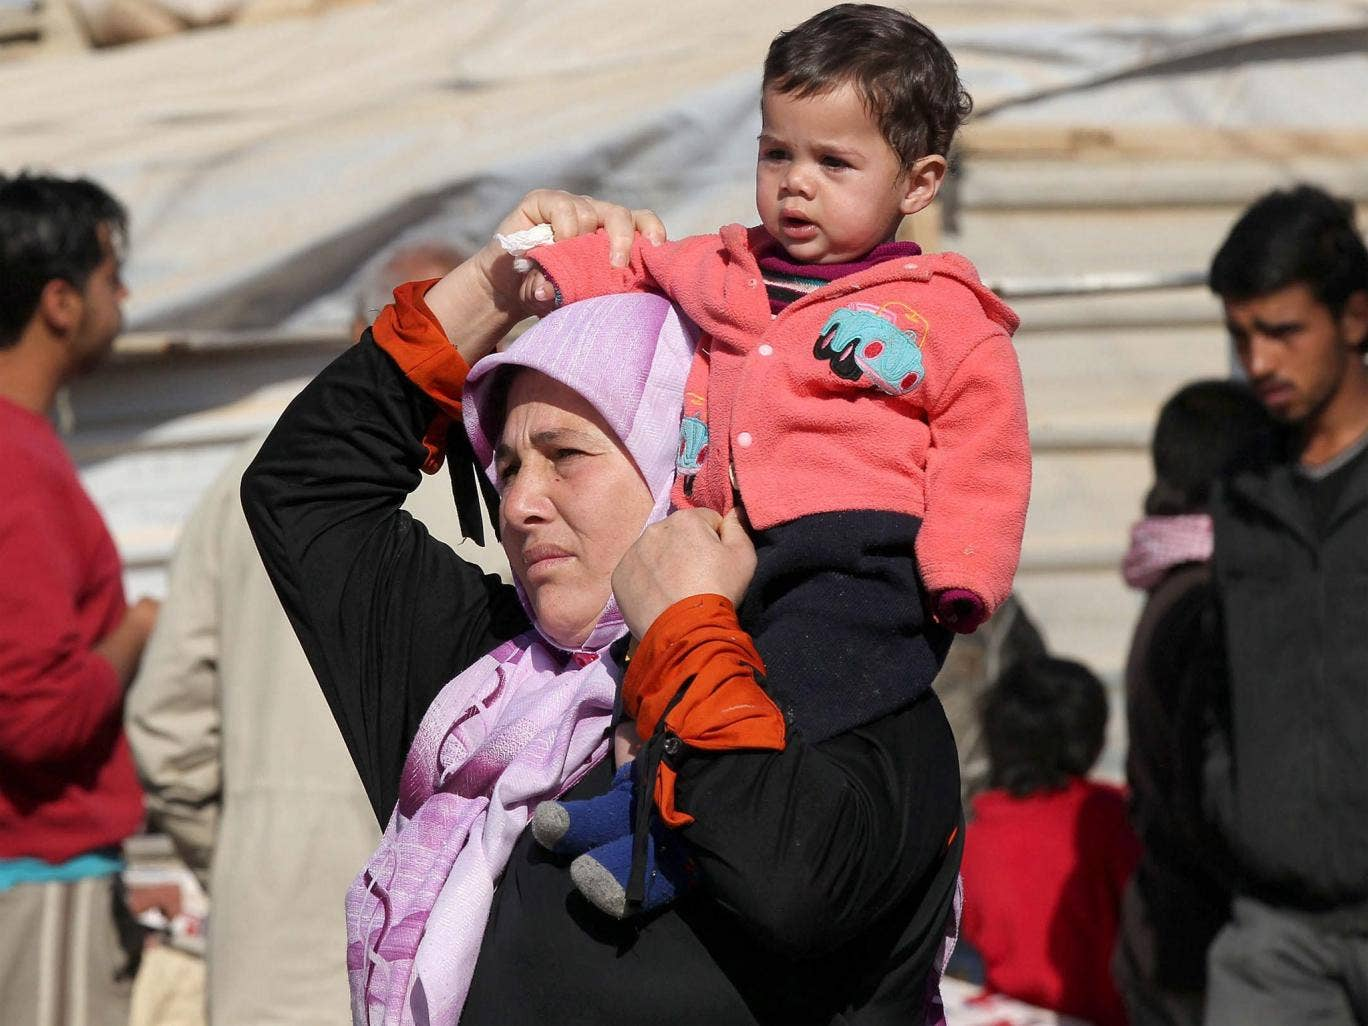 A Syrian woman carries a child on her shoulder at a refugee camp in Jordan